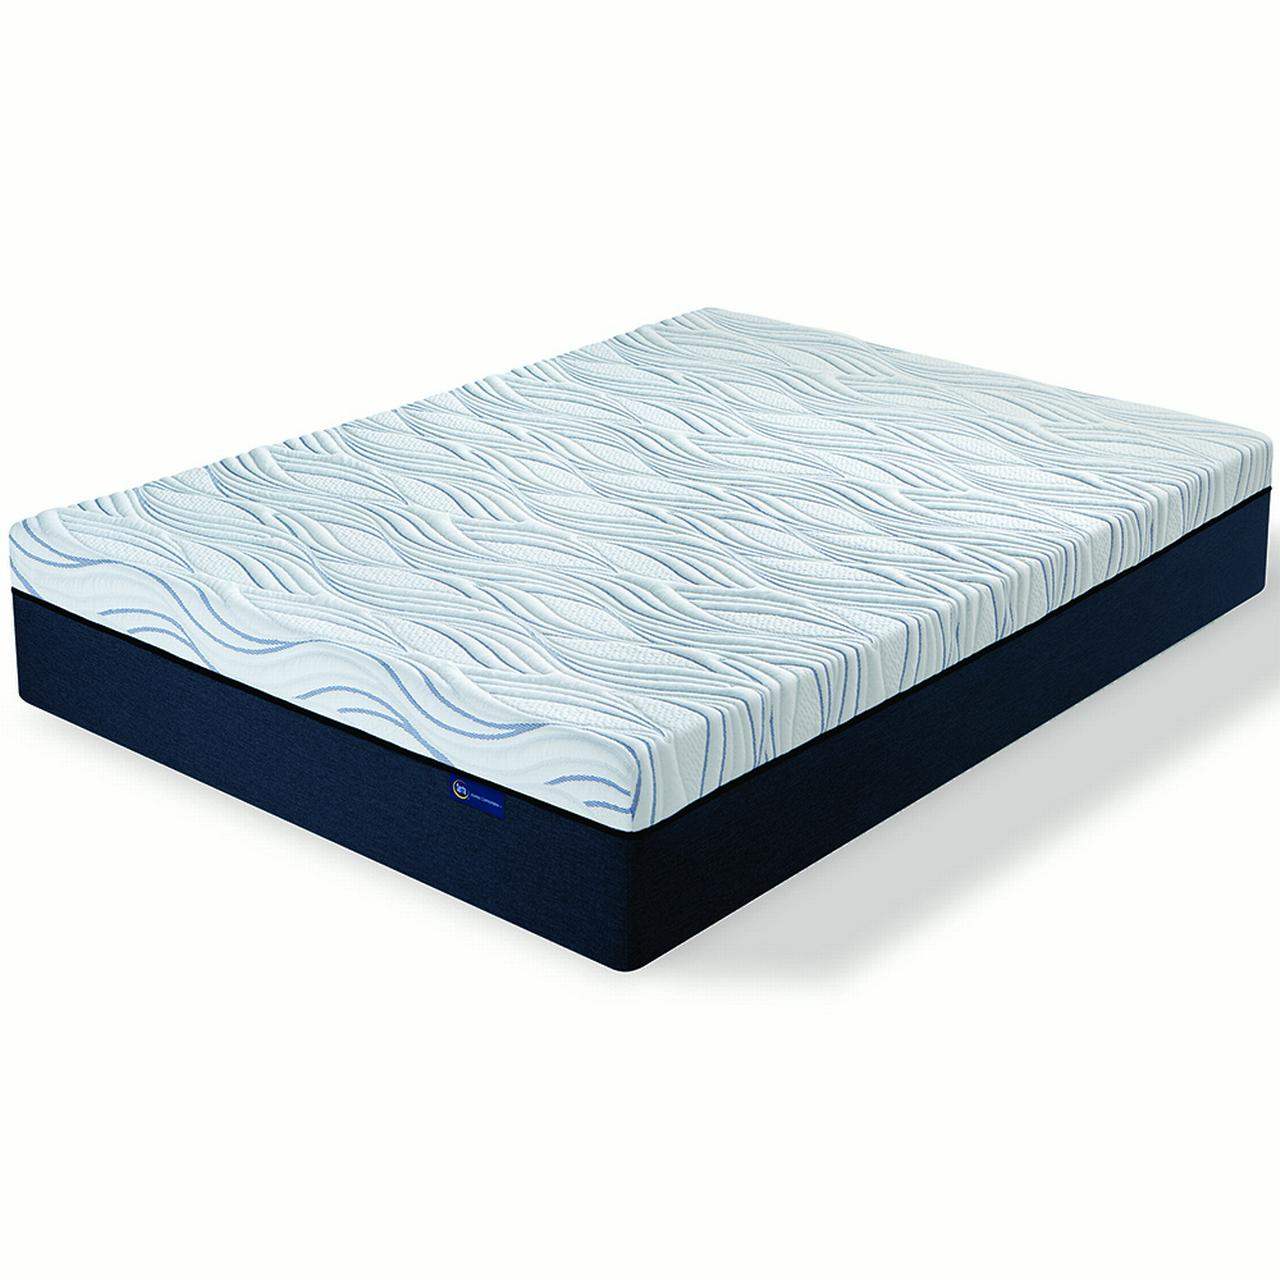 "Serta 771448-8010 12"" Perfect Sleeper Express Memory Foam Mattress in a Box - Twin"